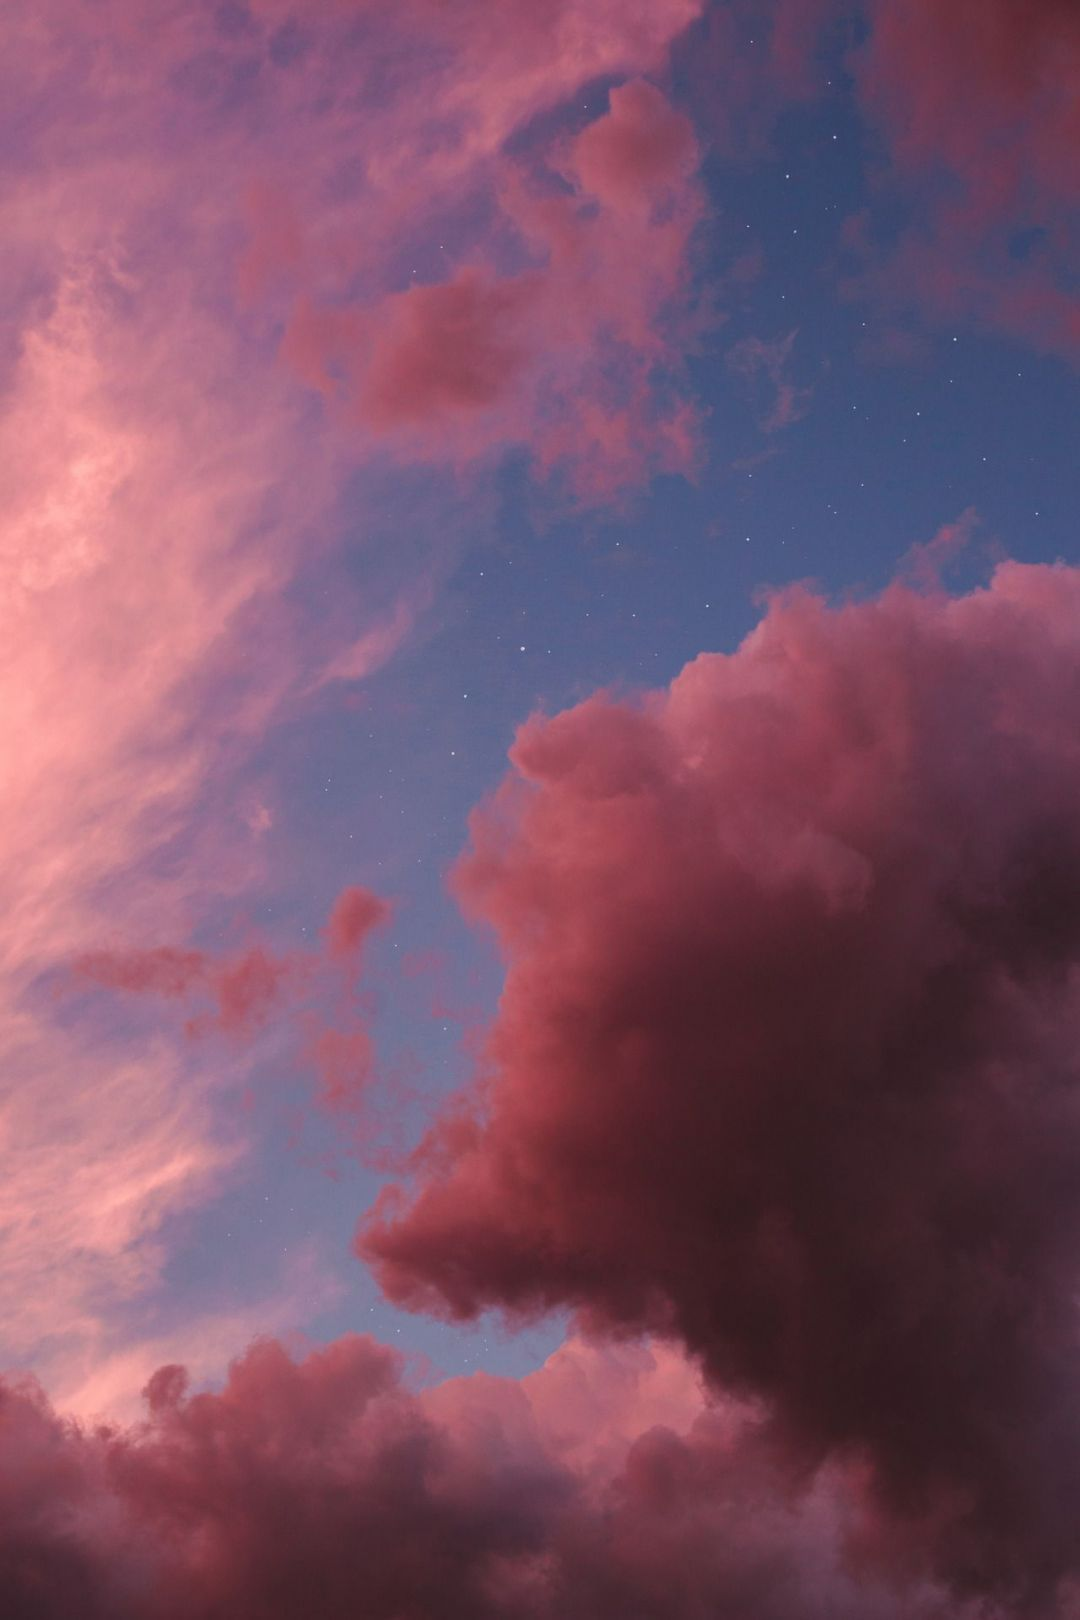 Clouds Android Iphone Desktop Hd Backgrounds Wallpapers 1080p 4k 113924 Hdwallpapers Night Sky Wallpaper Sky Aesthetic Aesthetic Iphone Wallpaper